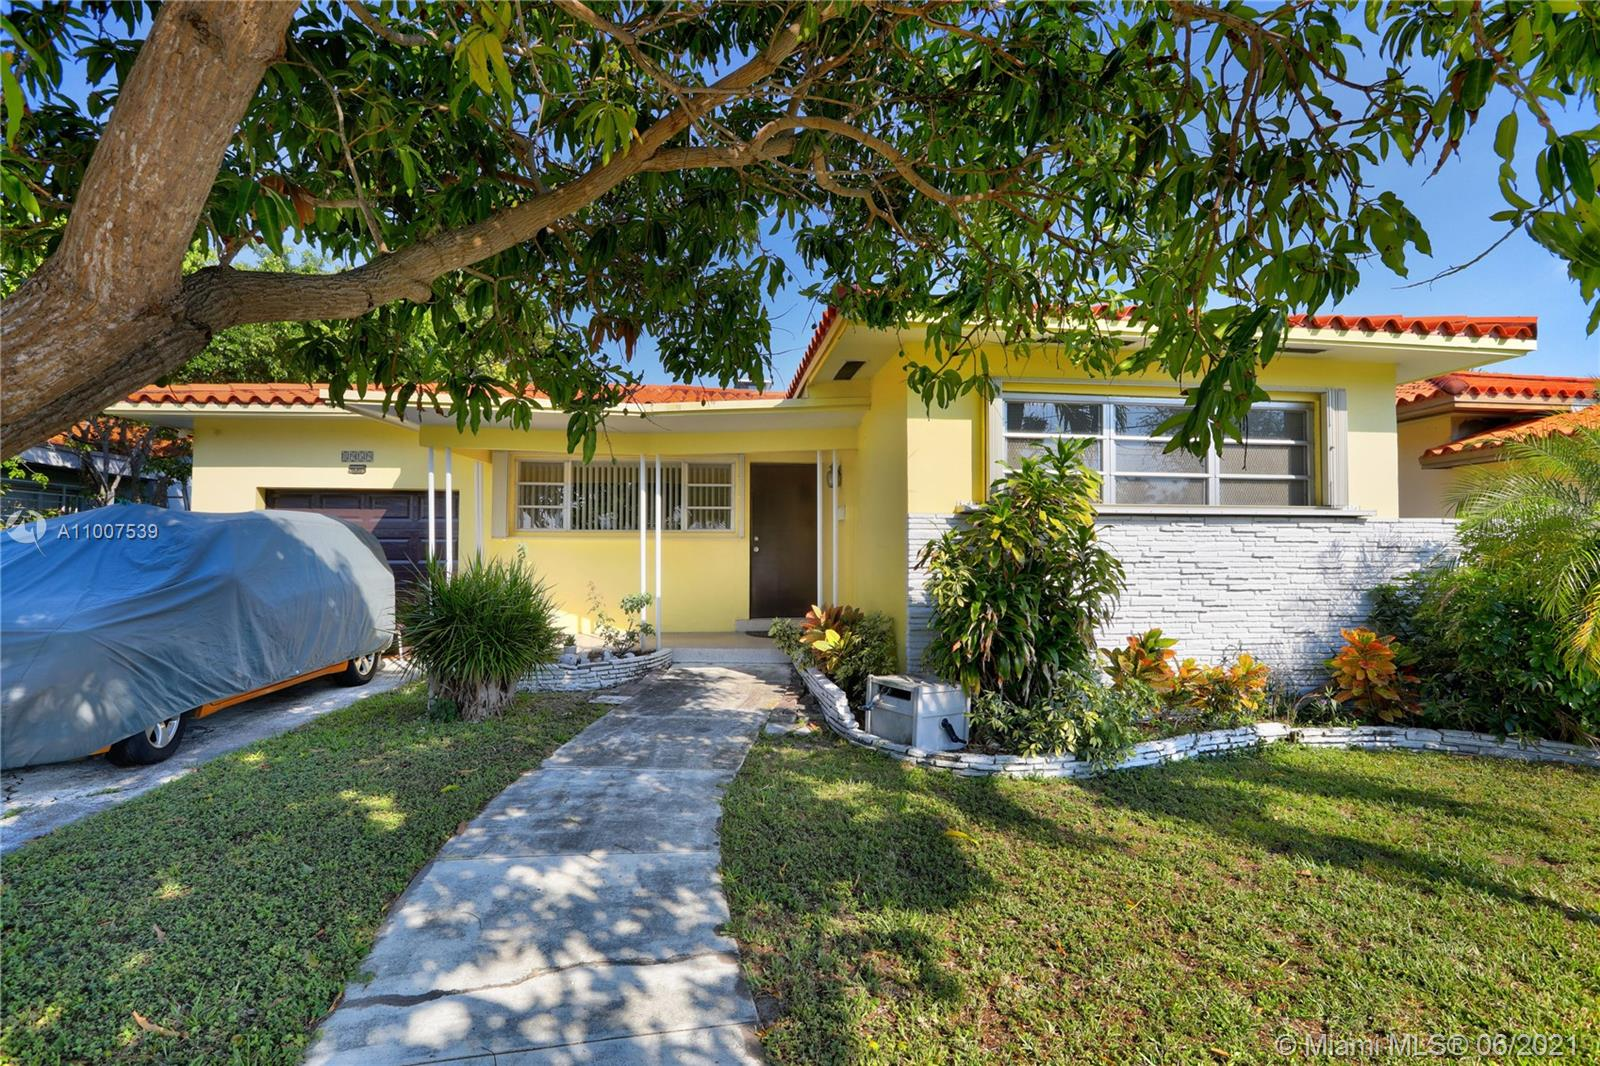 8959 Abbott Ave, Surfside, Florida 33154